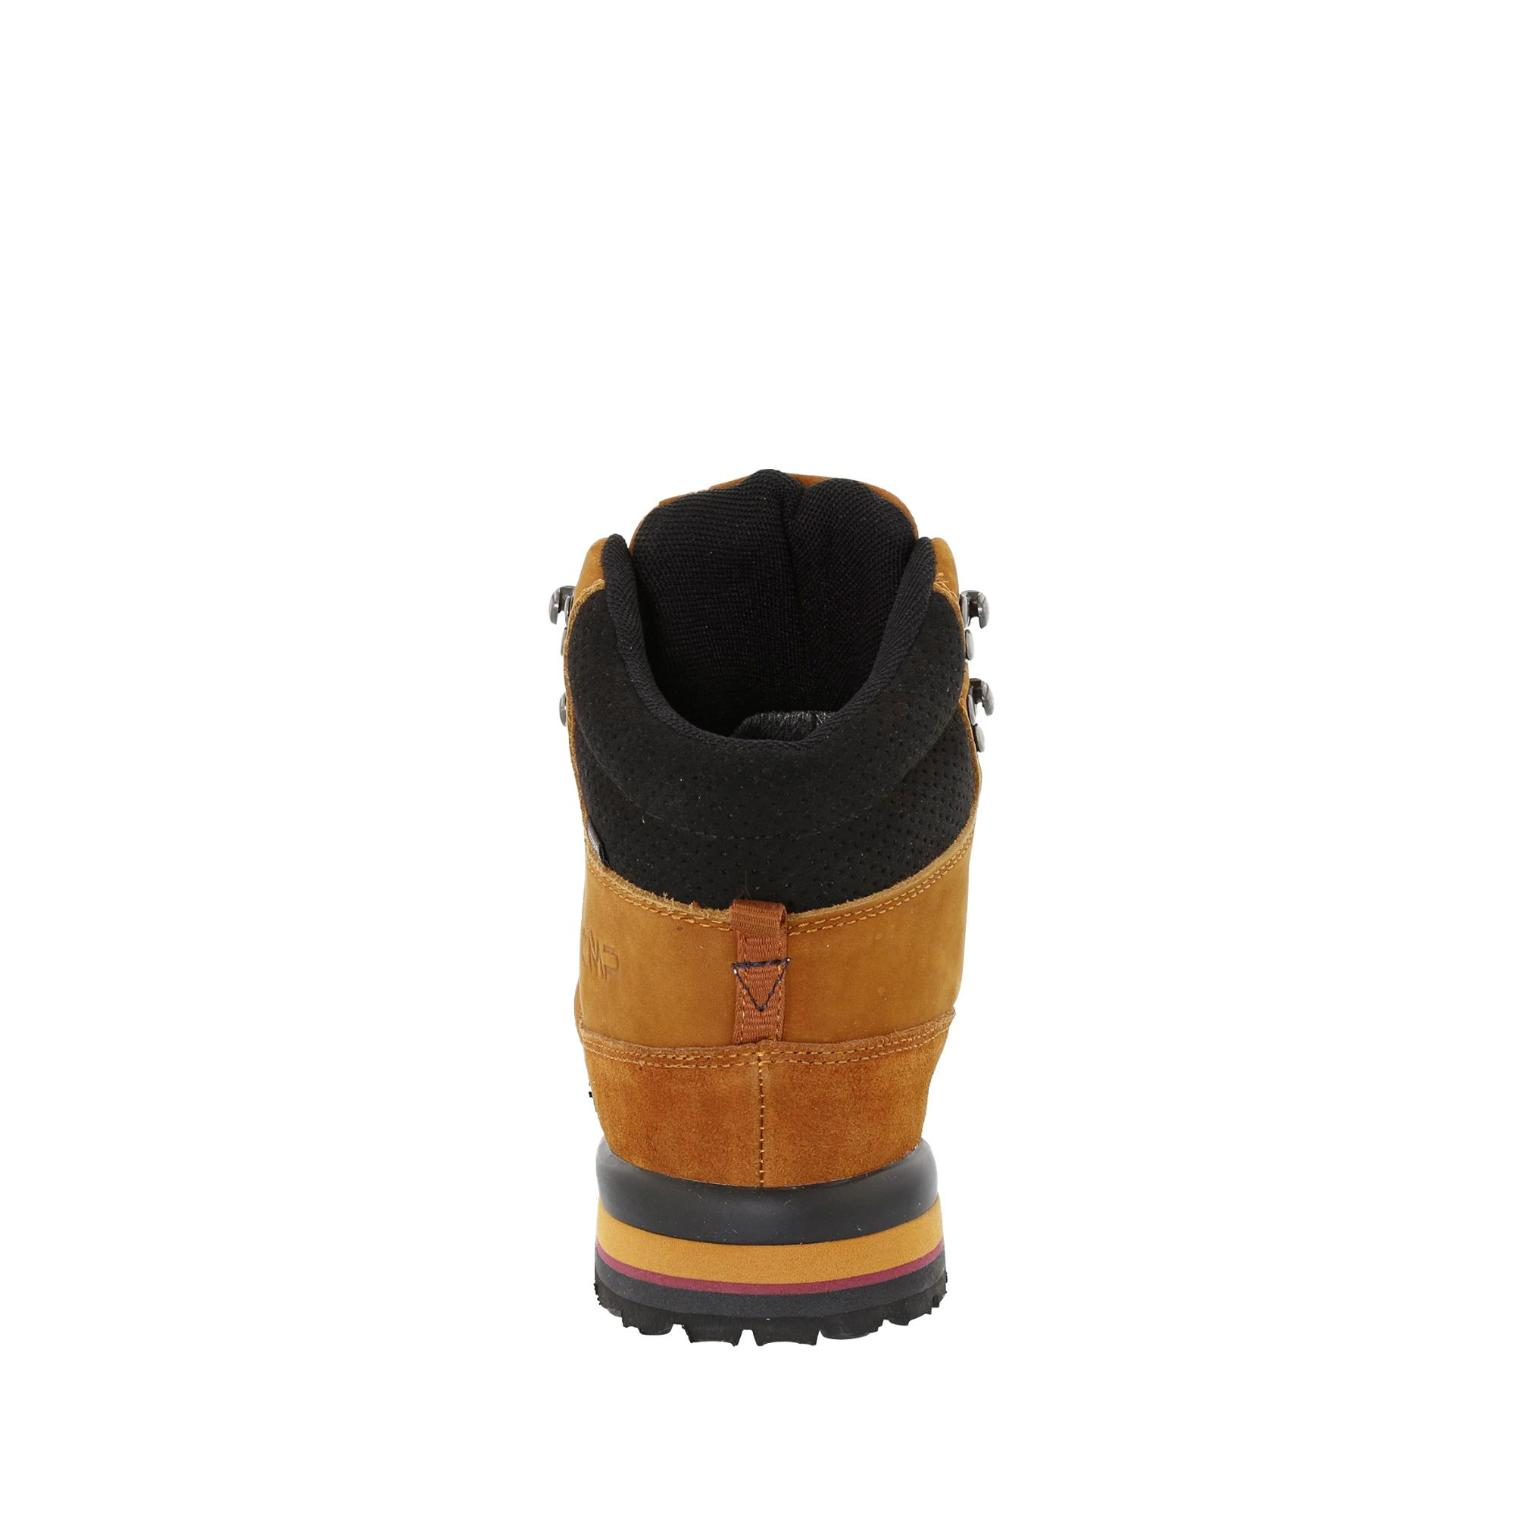 CMP Heka Farbe Clima Protect Winterboots in Farbe Heka cognac 820290